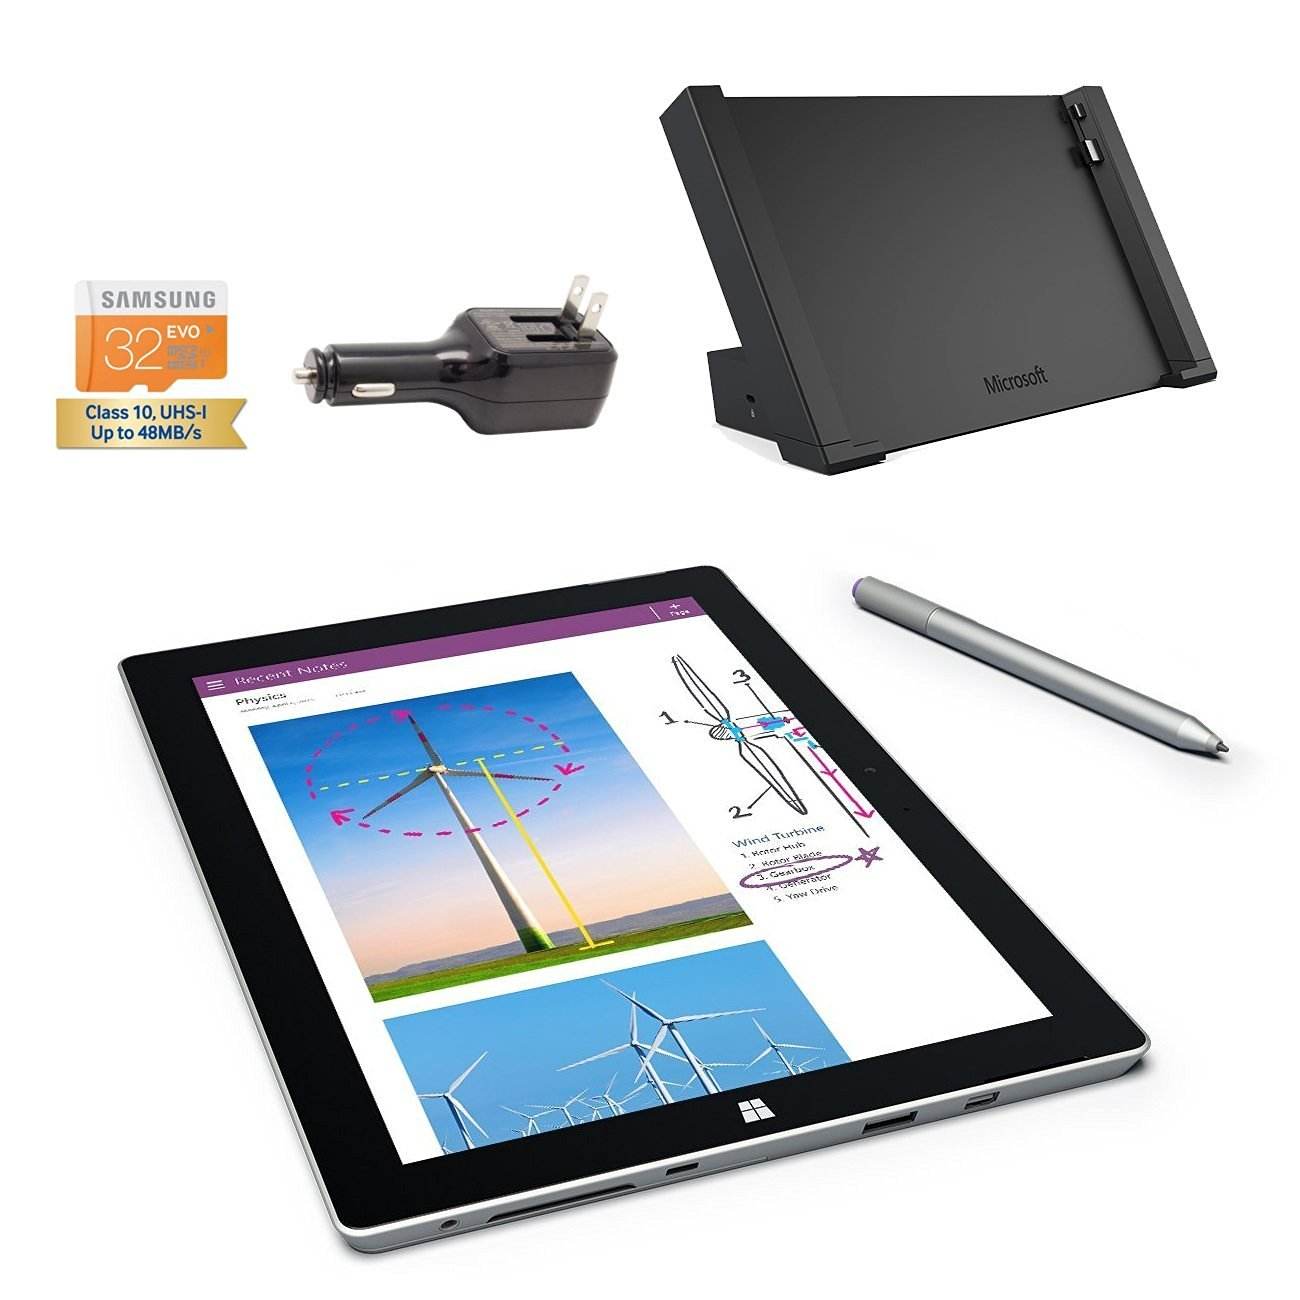 Microsoft Surface 3 Bundle - 5 Items: 128GB Wi-Fi Only Quard-Core 10.8-Inch Tablet, Original Pen, Surface Dock, Samsung 32GB SDHC Card and 2-in-1 Travel Charger